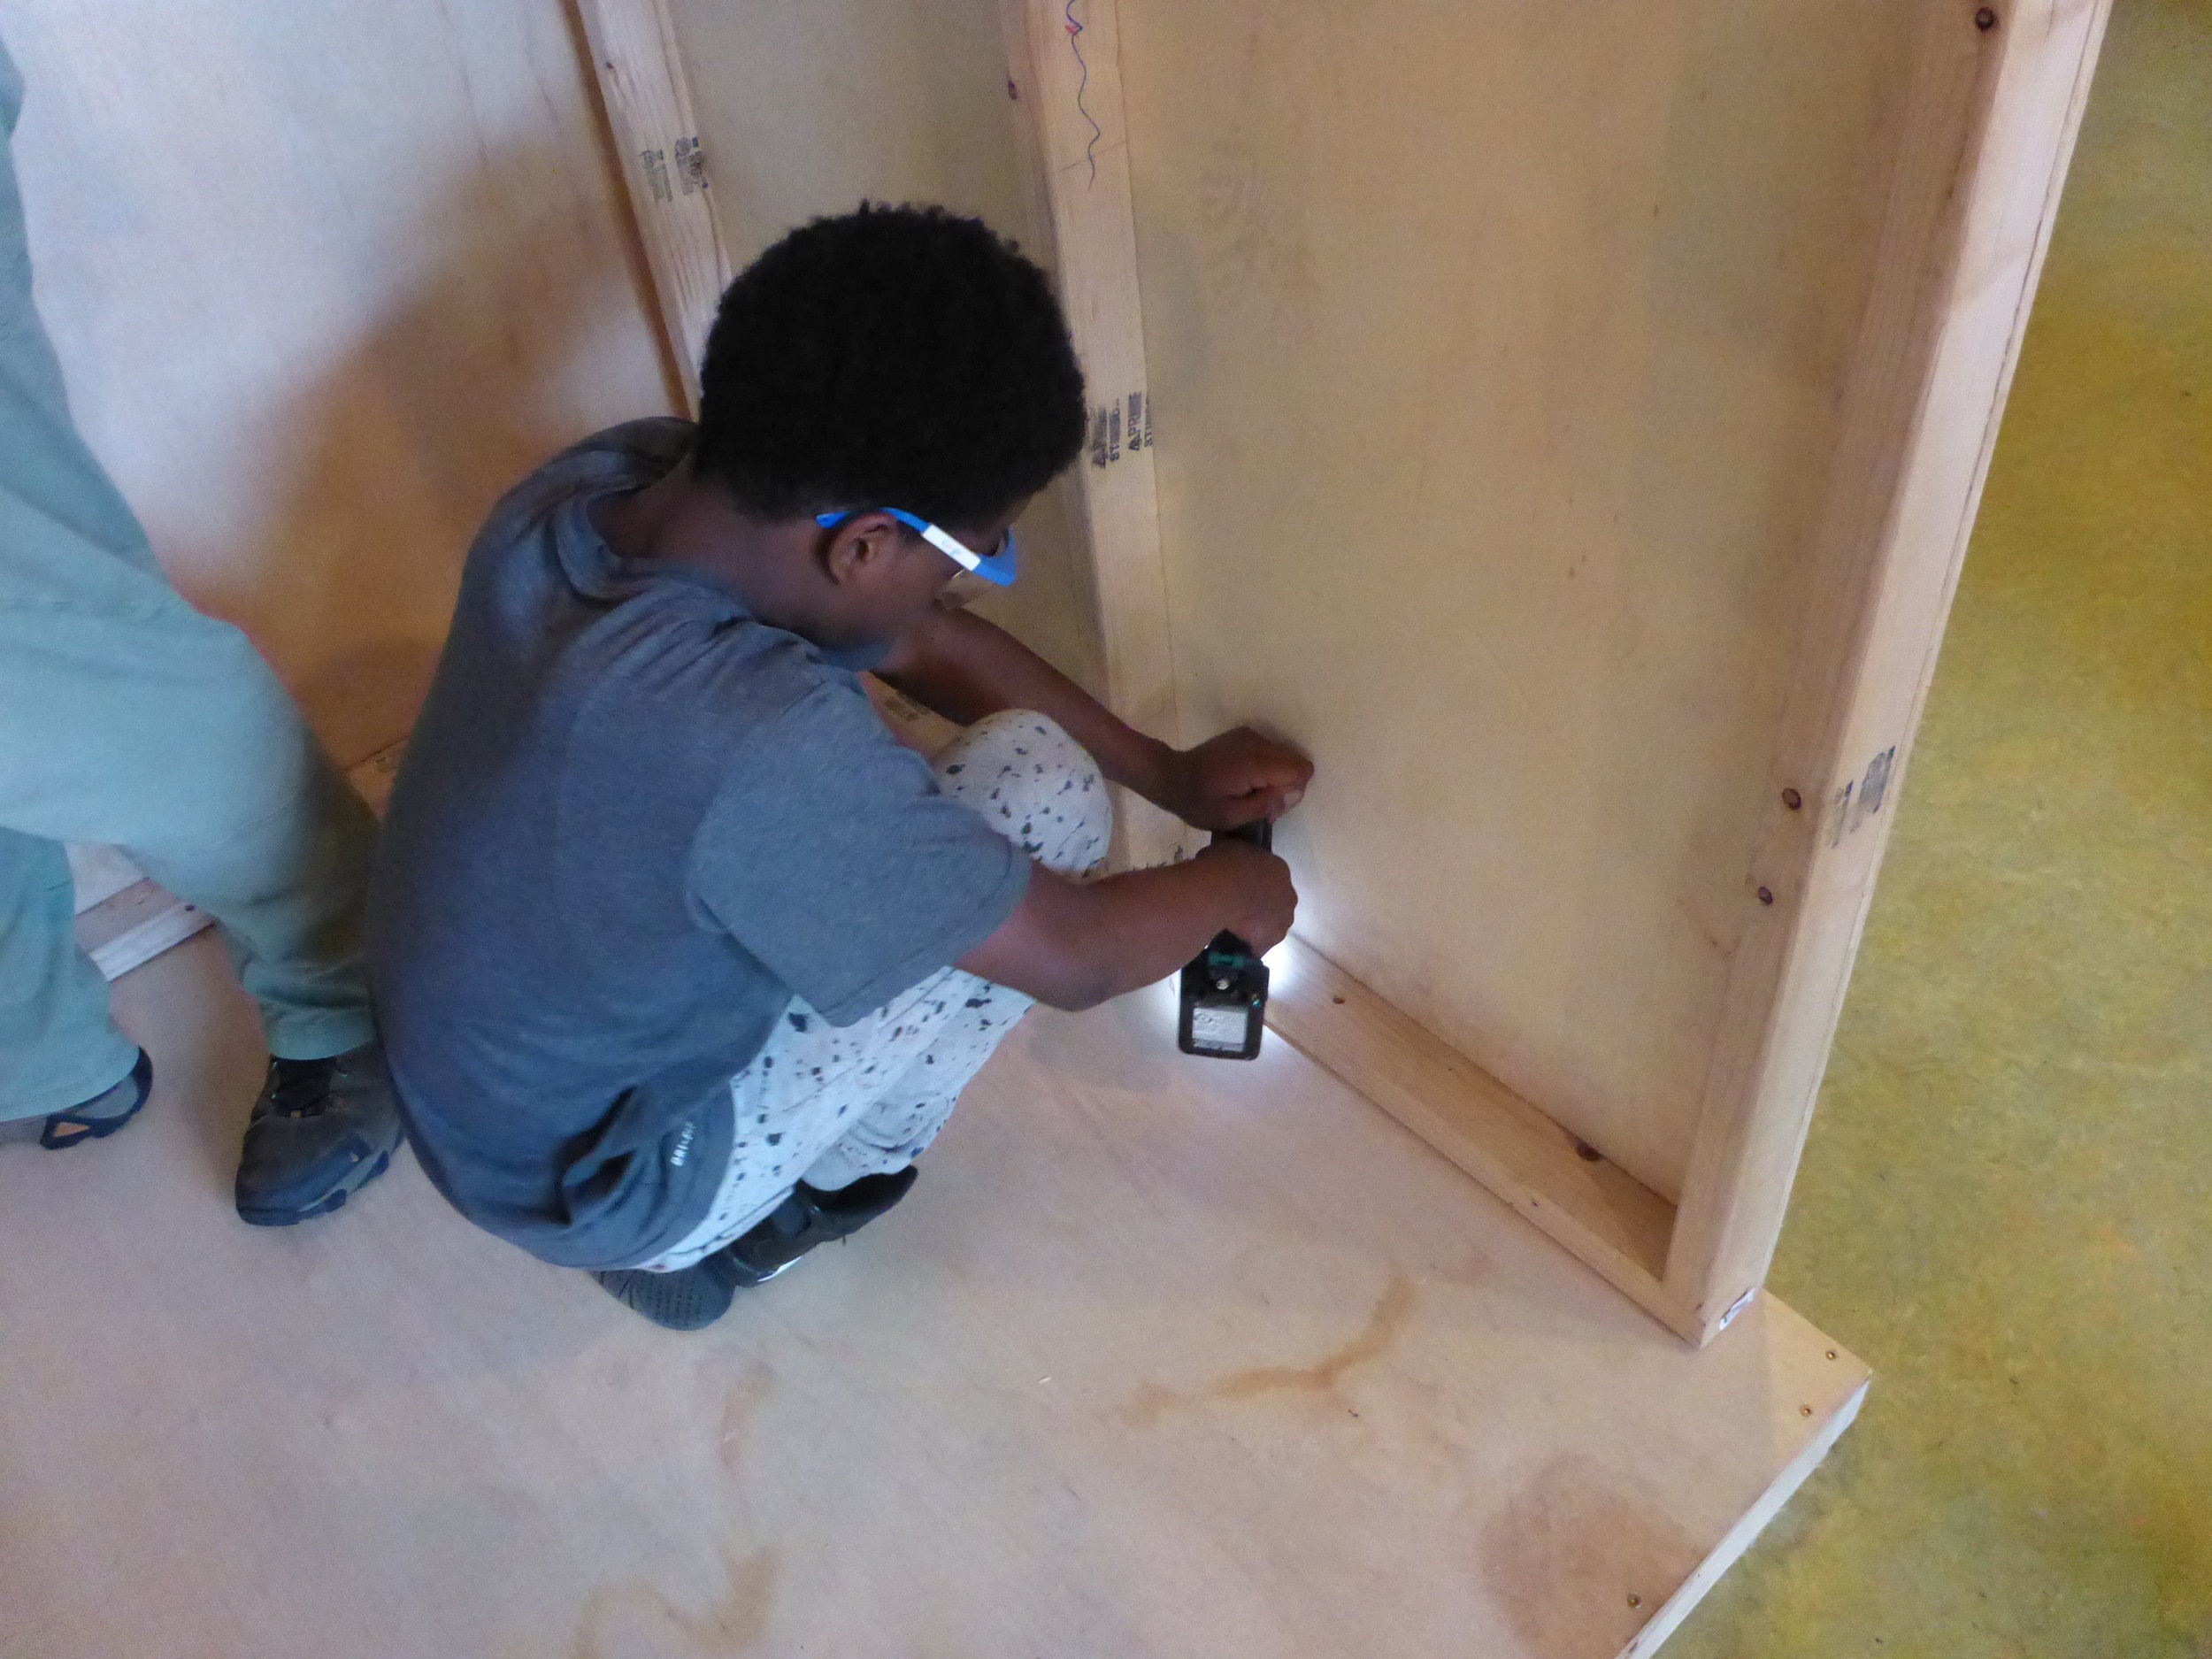 Malieke secures the floor with lots of screws. Better safe than sorry when attaching your house to it's foundation!